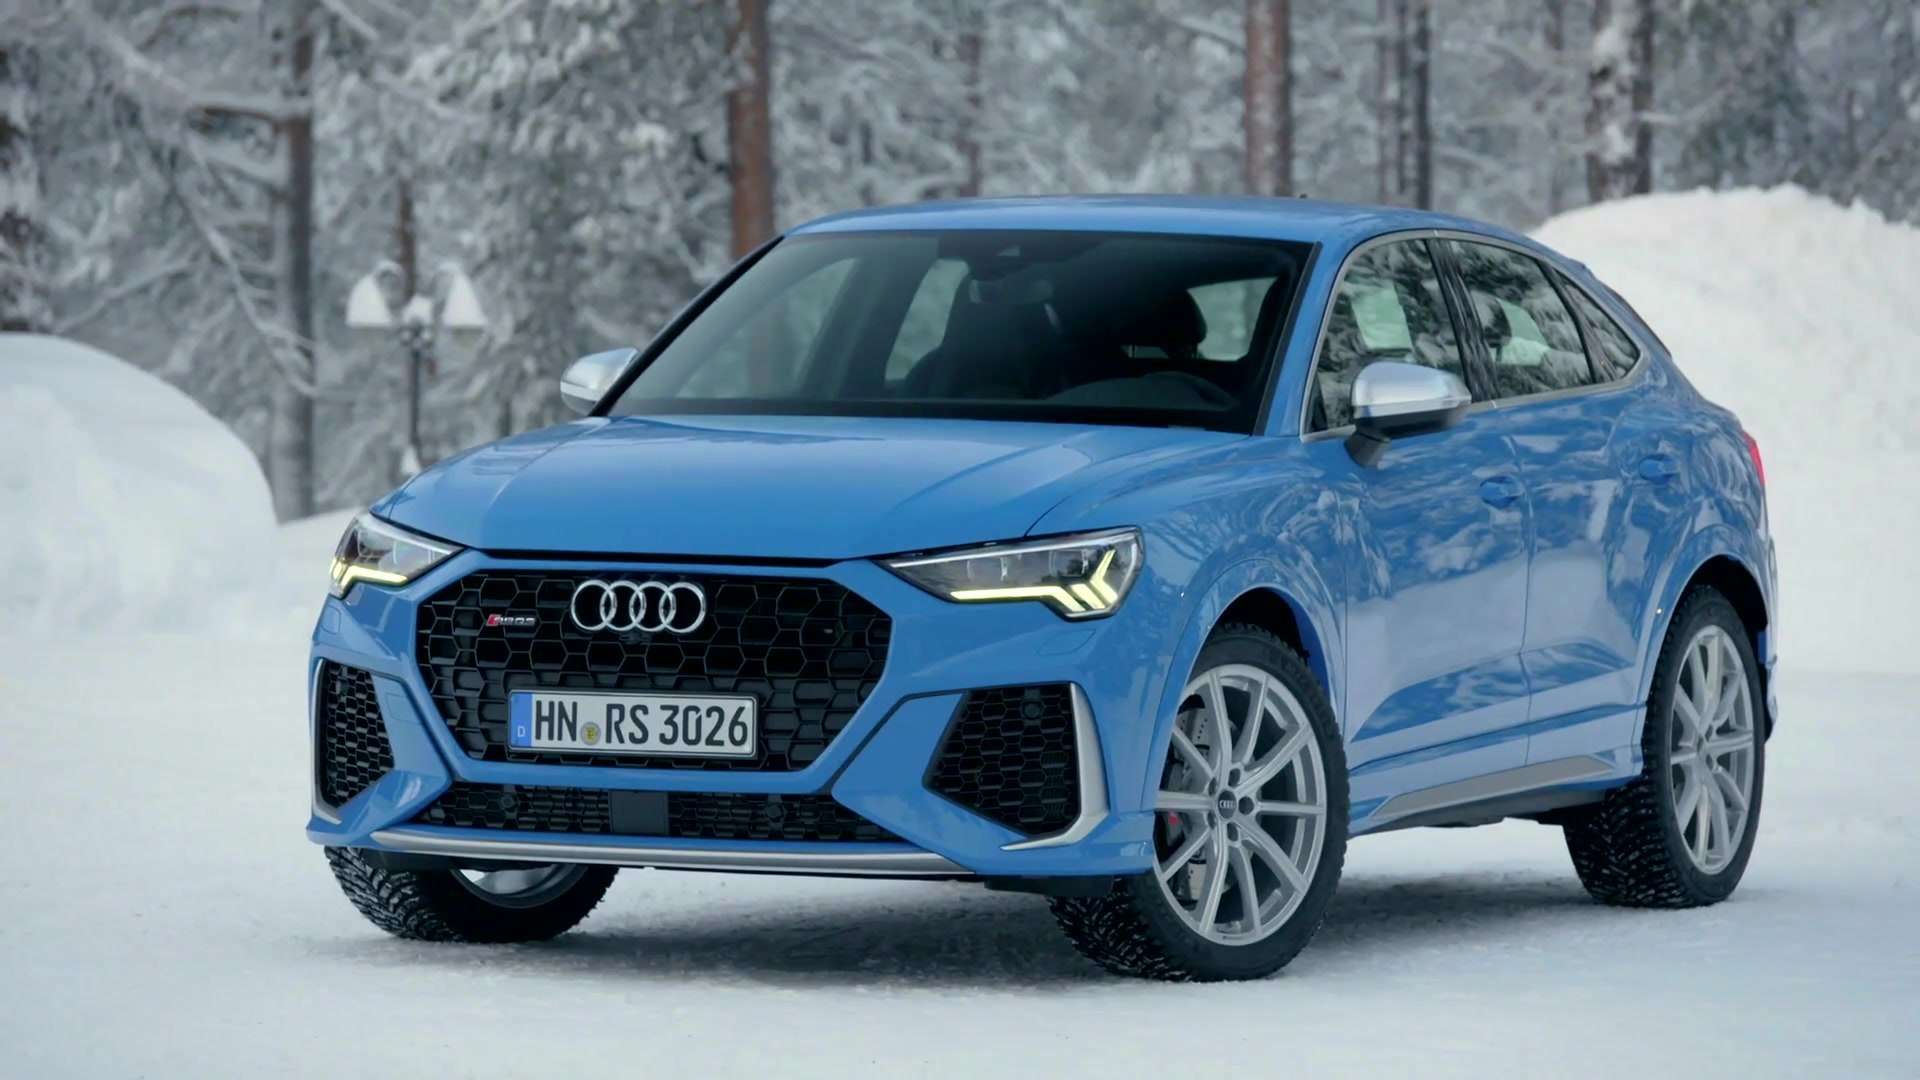 Audi Rs Q3 Sportback Exterior Design In Turbo Blue Video Dailymotion